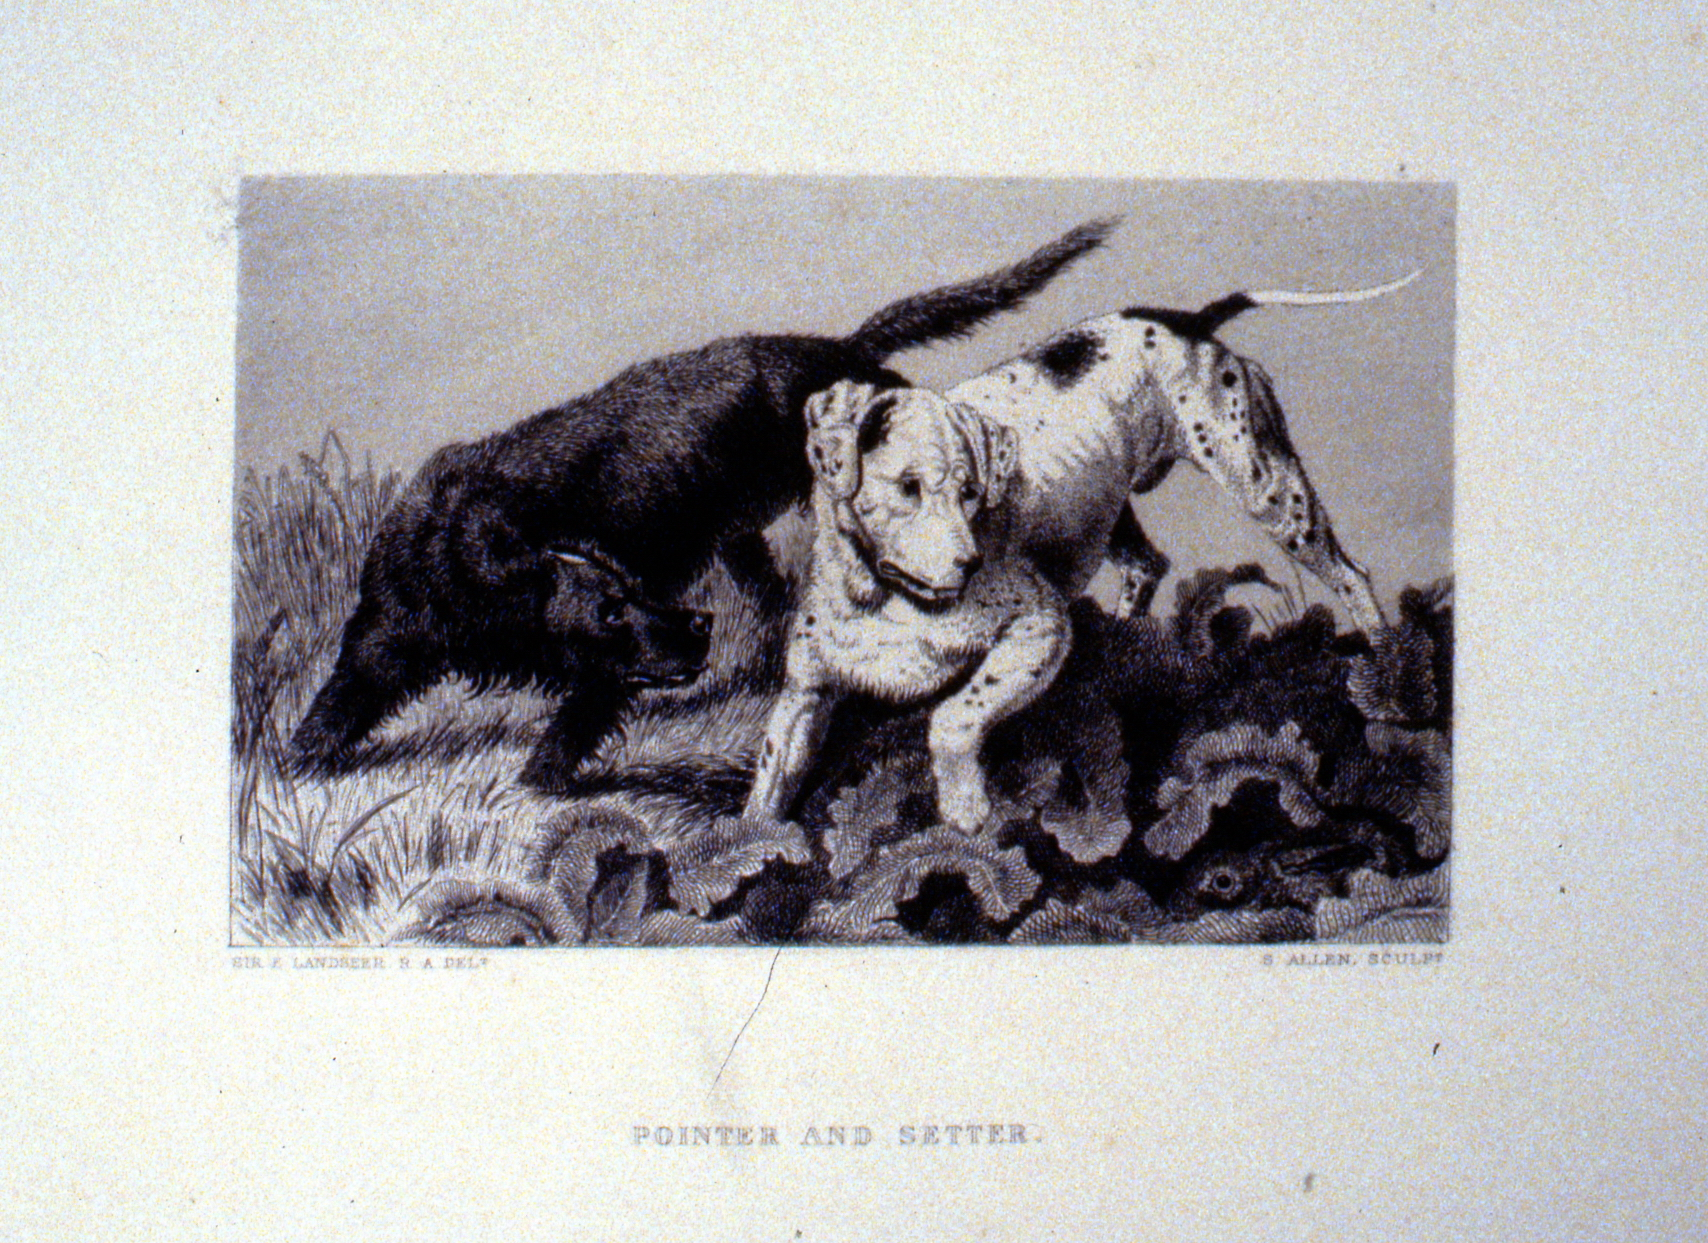 Pointer and Setter , c. late 19th Century, S. Allen, steel engraving, 11.3 cm x 18.1 cm, 1996.08.45, gift of Yvonne Adams